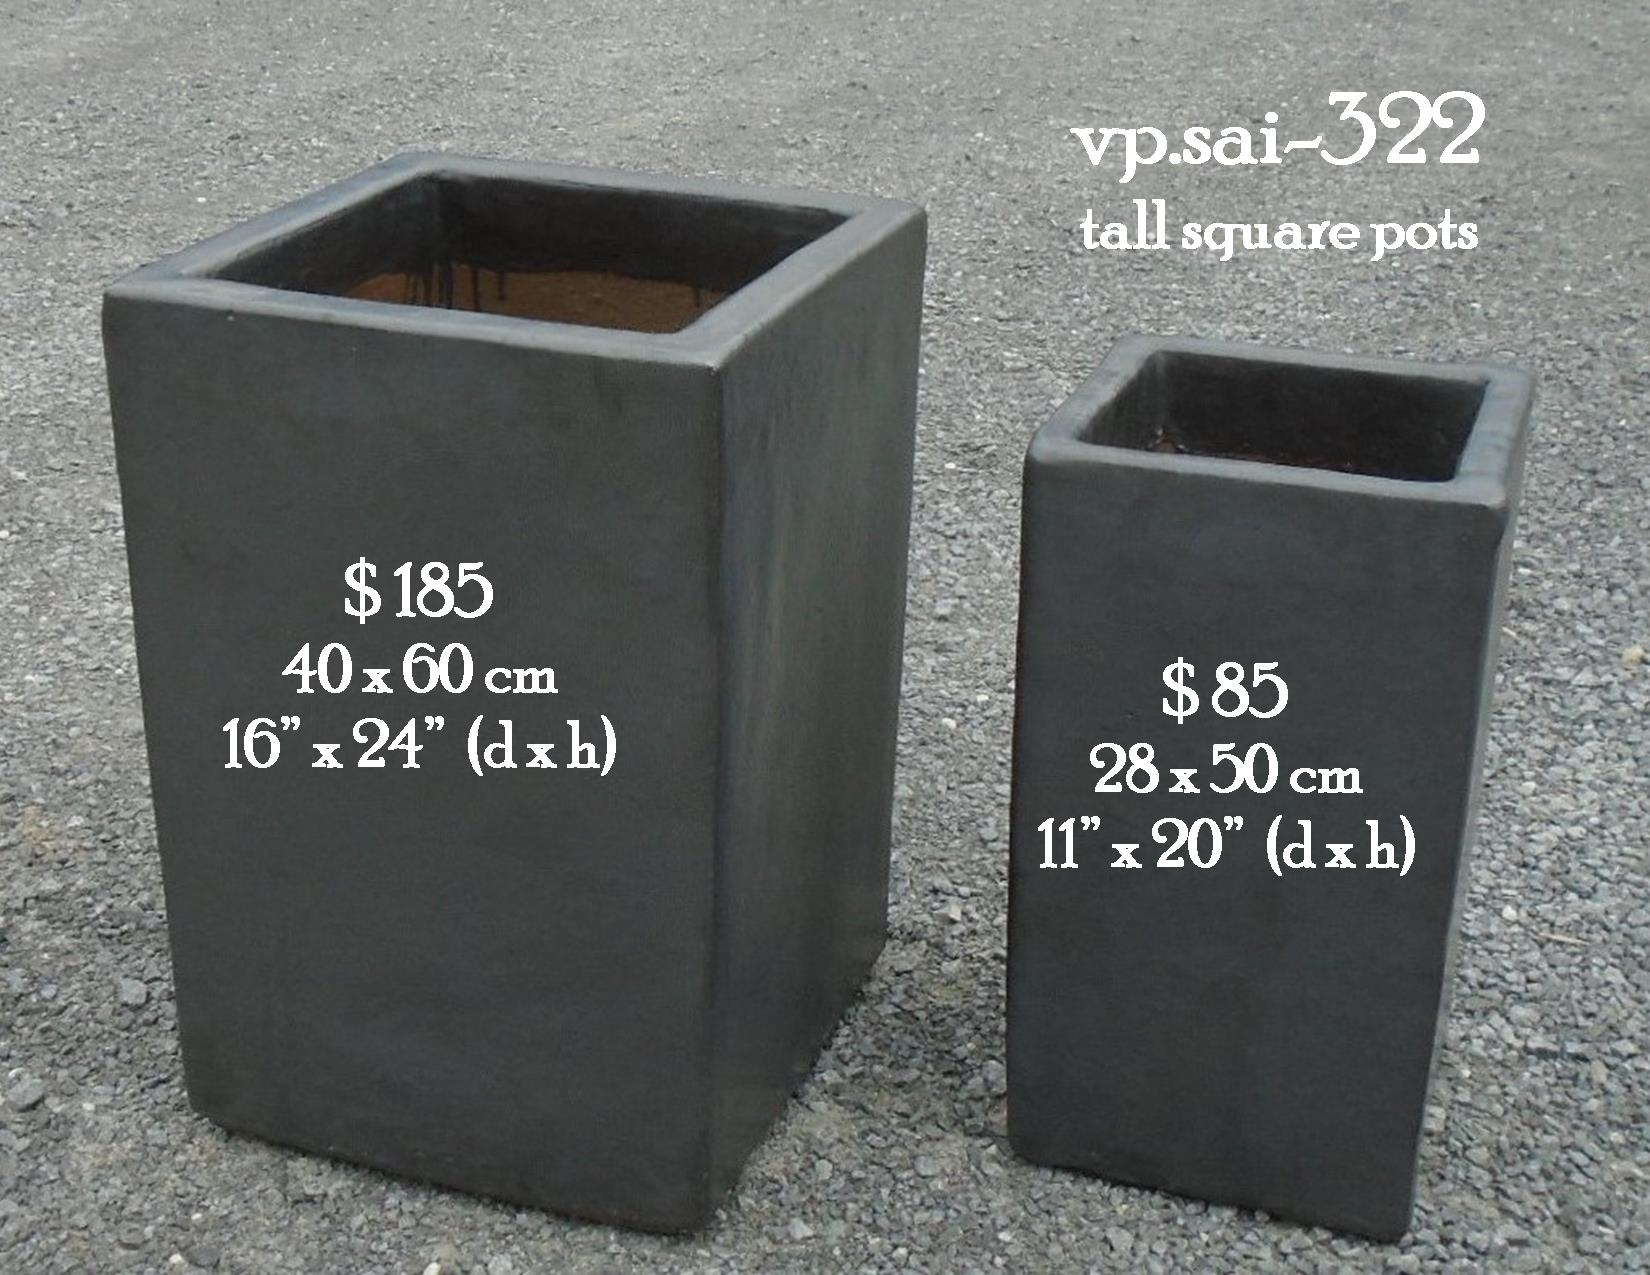 vp.sai-322    tall square pots